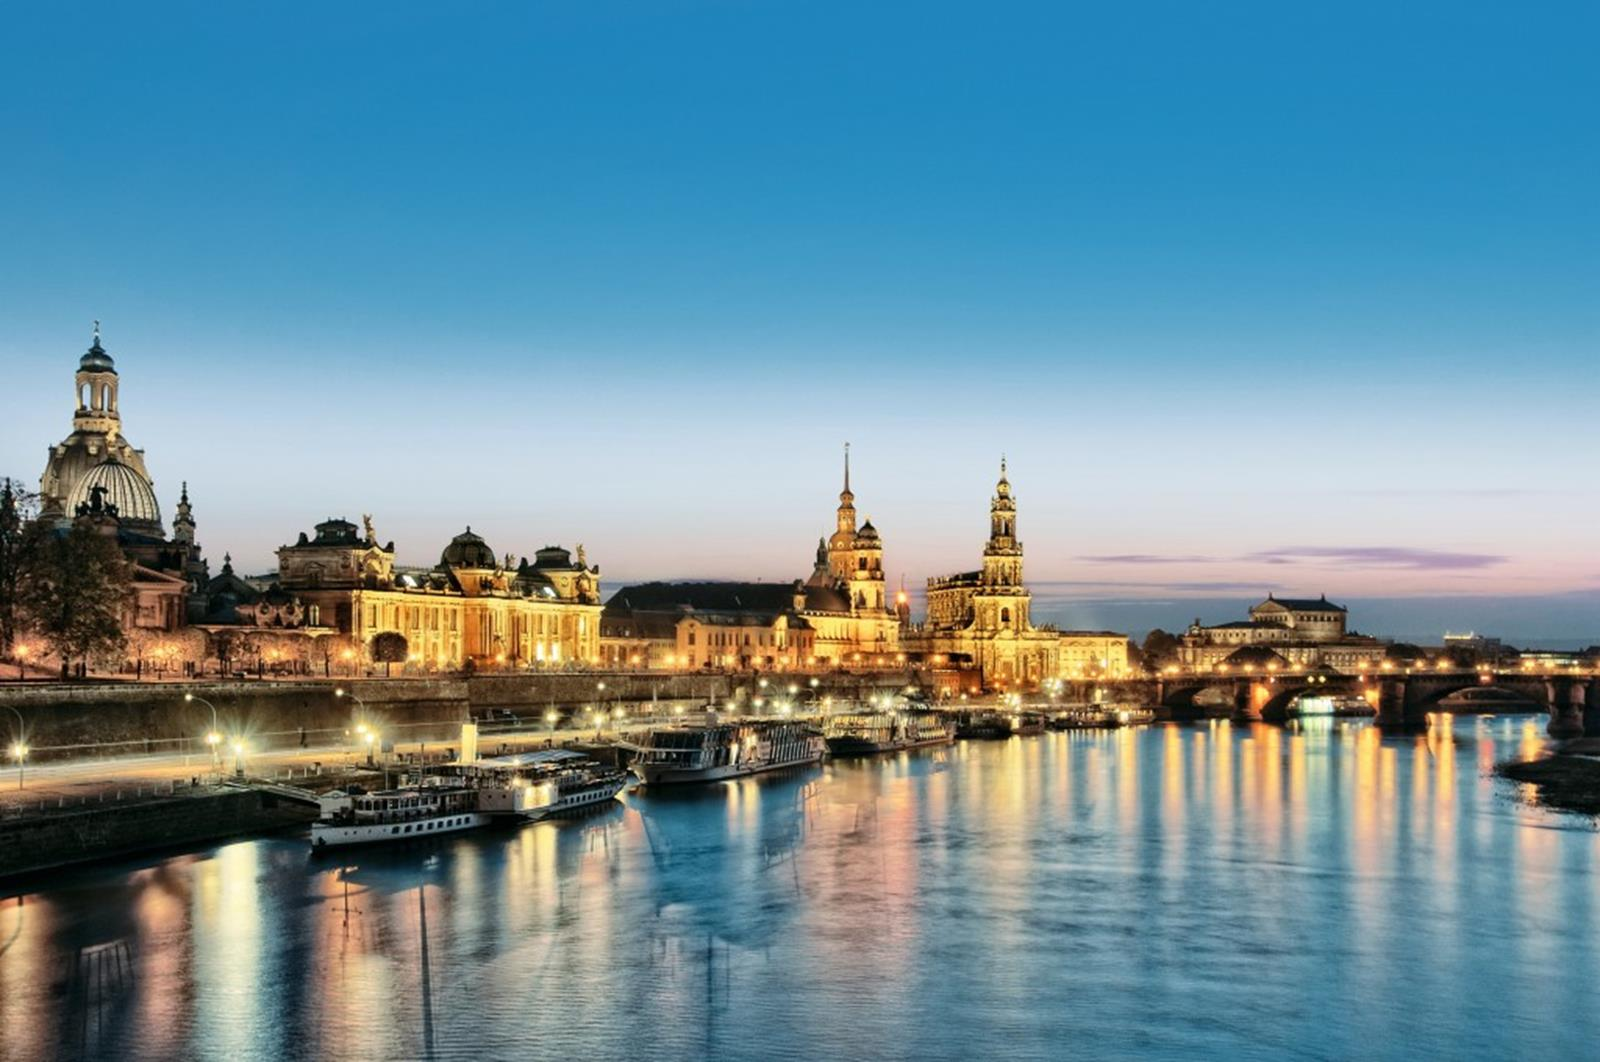 The famous skyline of Dresden's Altstadt attracts millions of visitors every year. © Dresden Marketing GmbH / Photo: Frederik Schrader